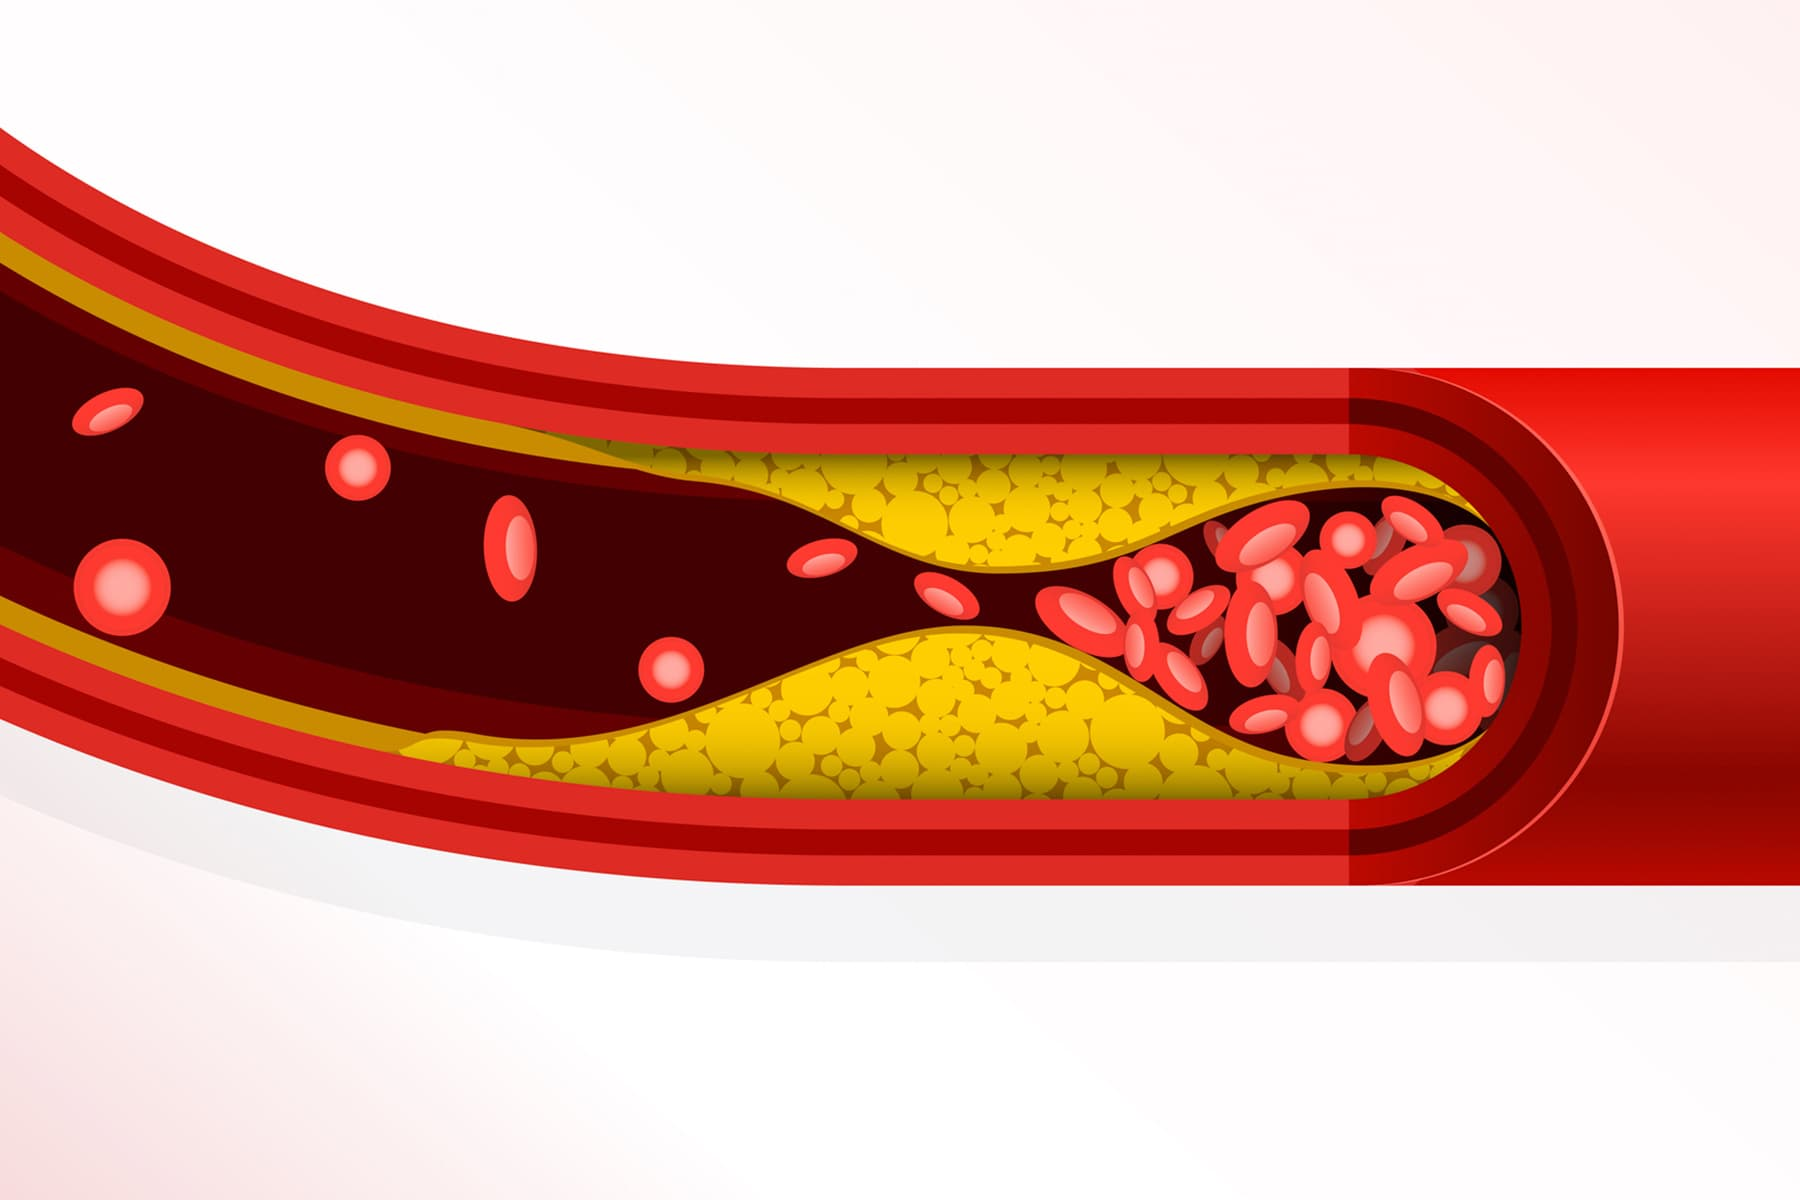 Blood Clotting Tied to Worse COVID-19 Outcomes  - web md